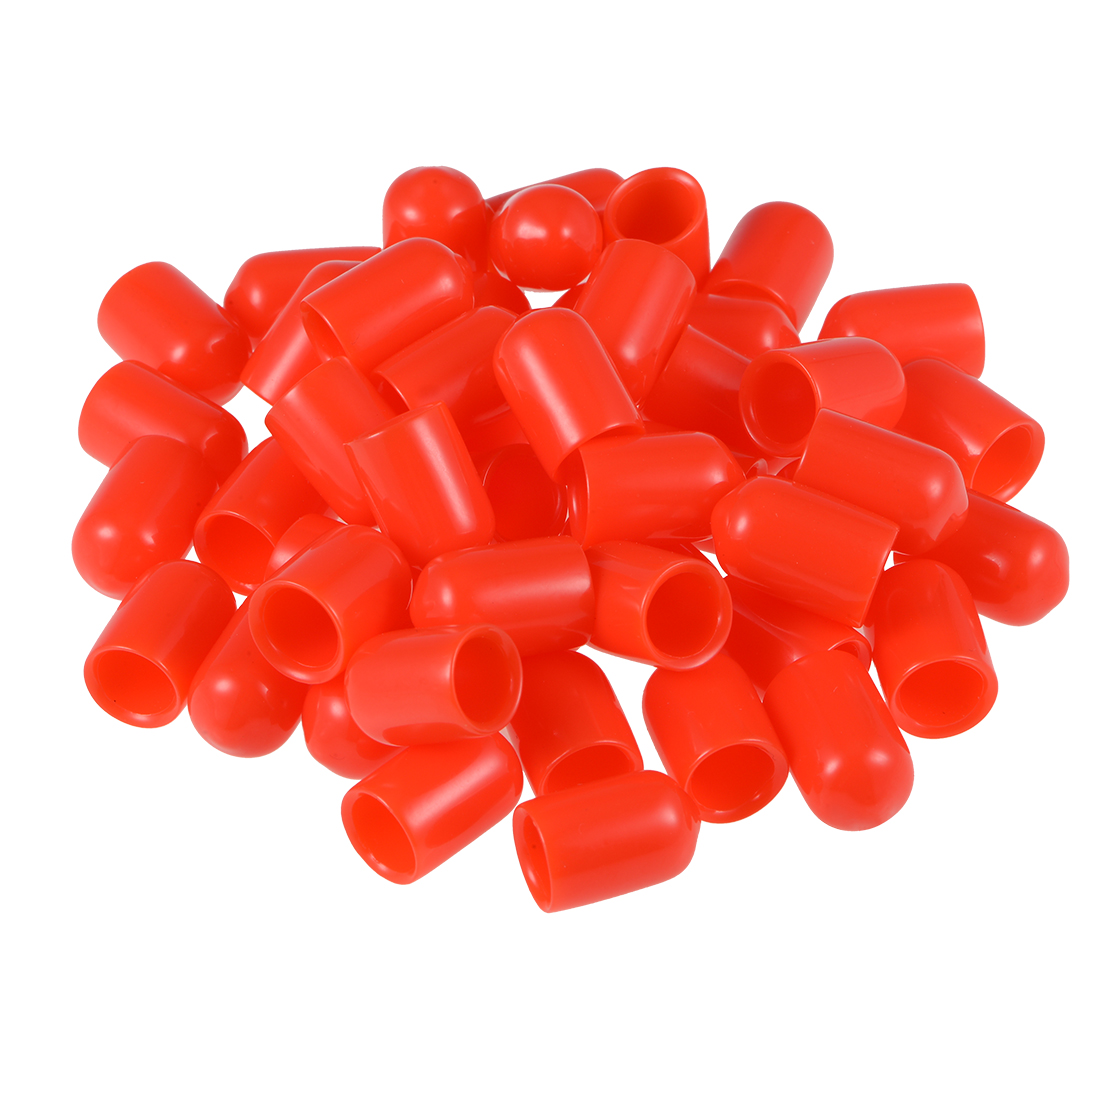 Screw Thread Protector, 8.5mm ID Round End Cap Cover Red Tube Caps 50pcs